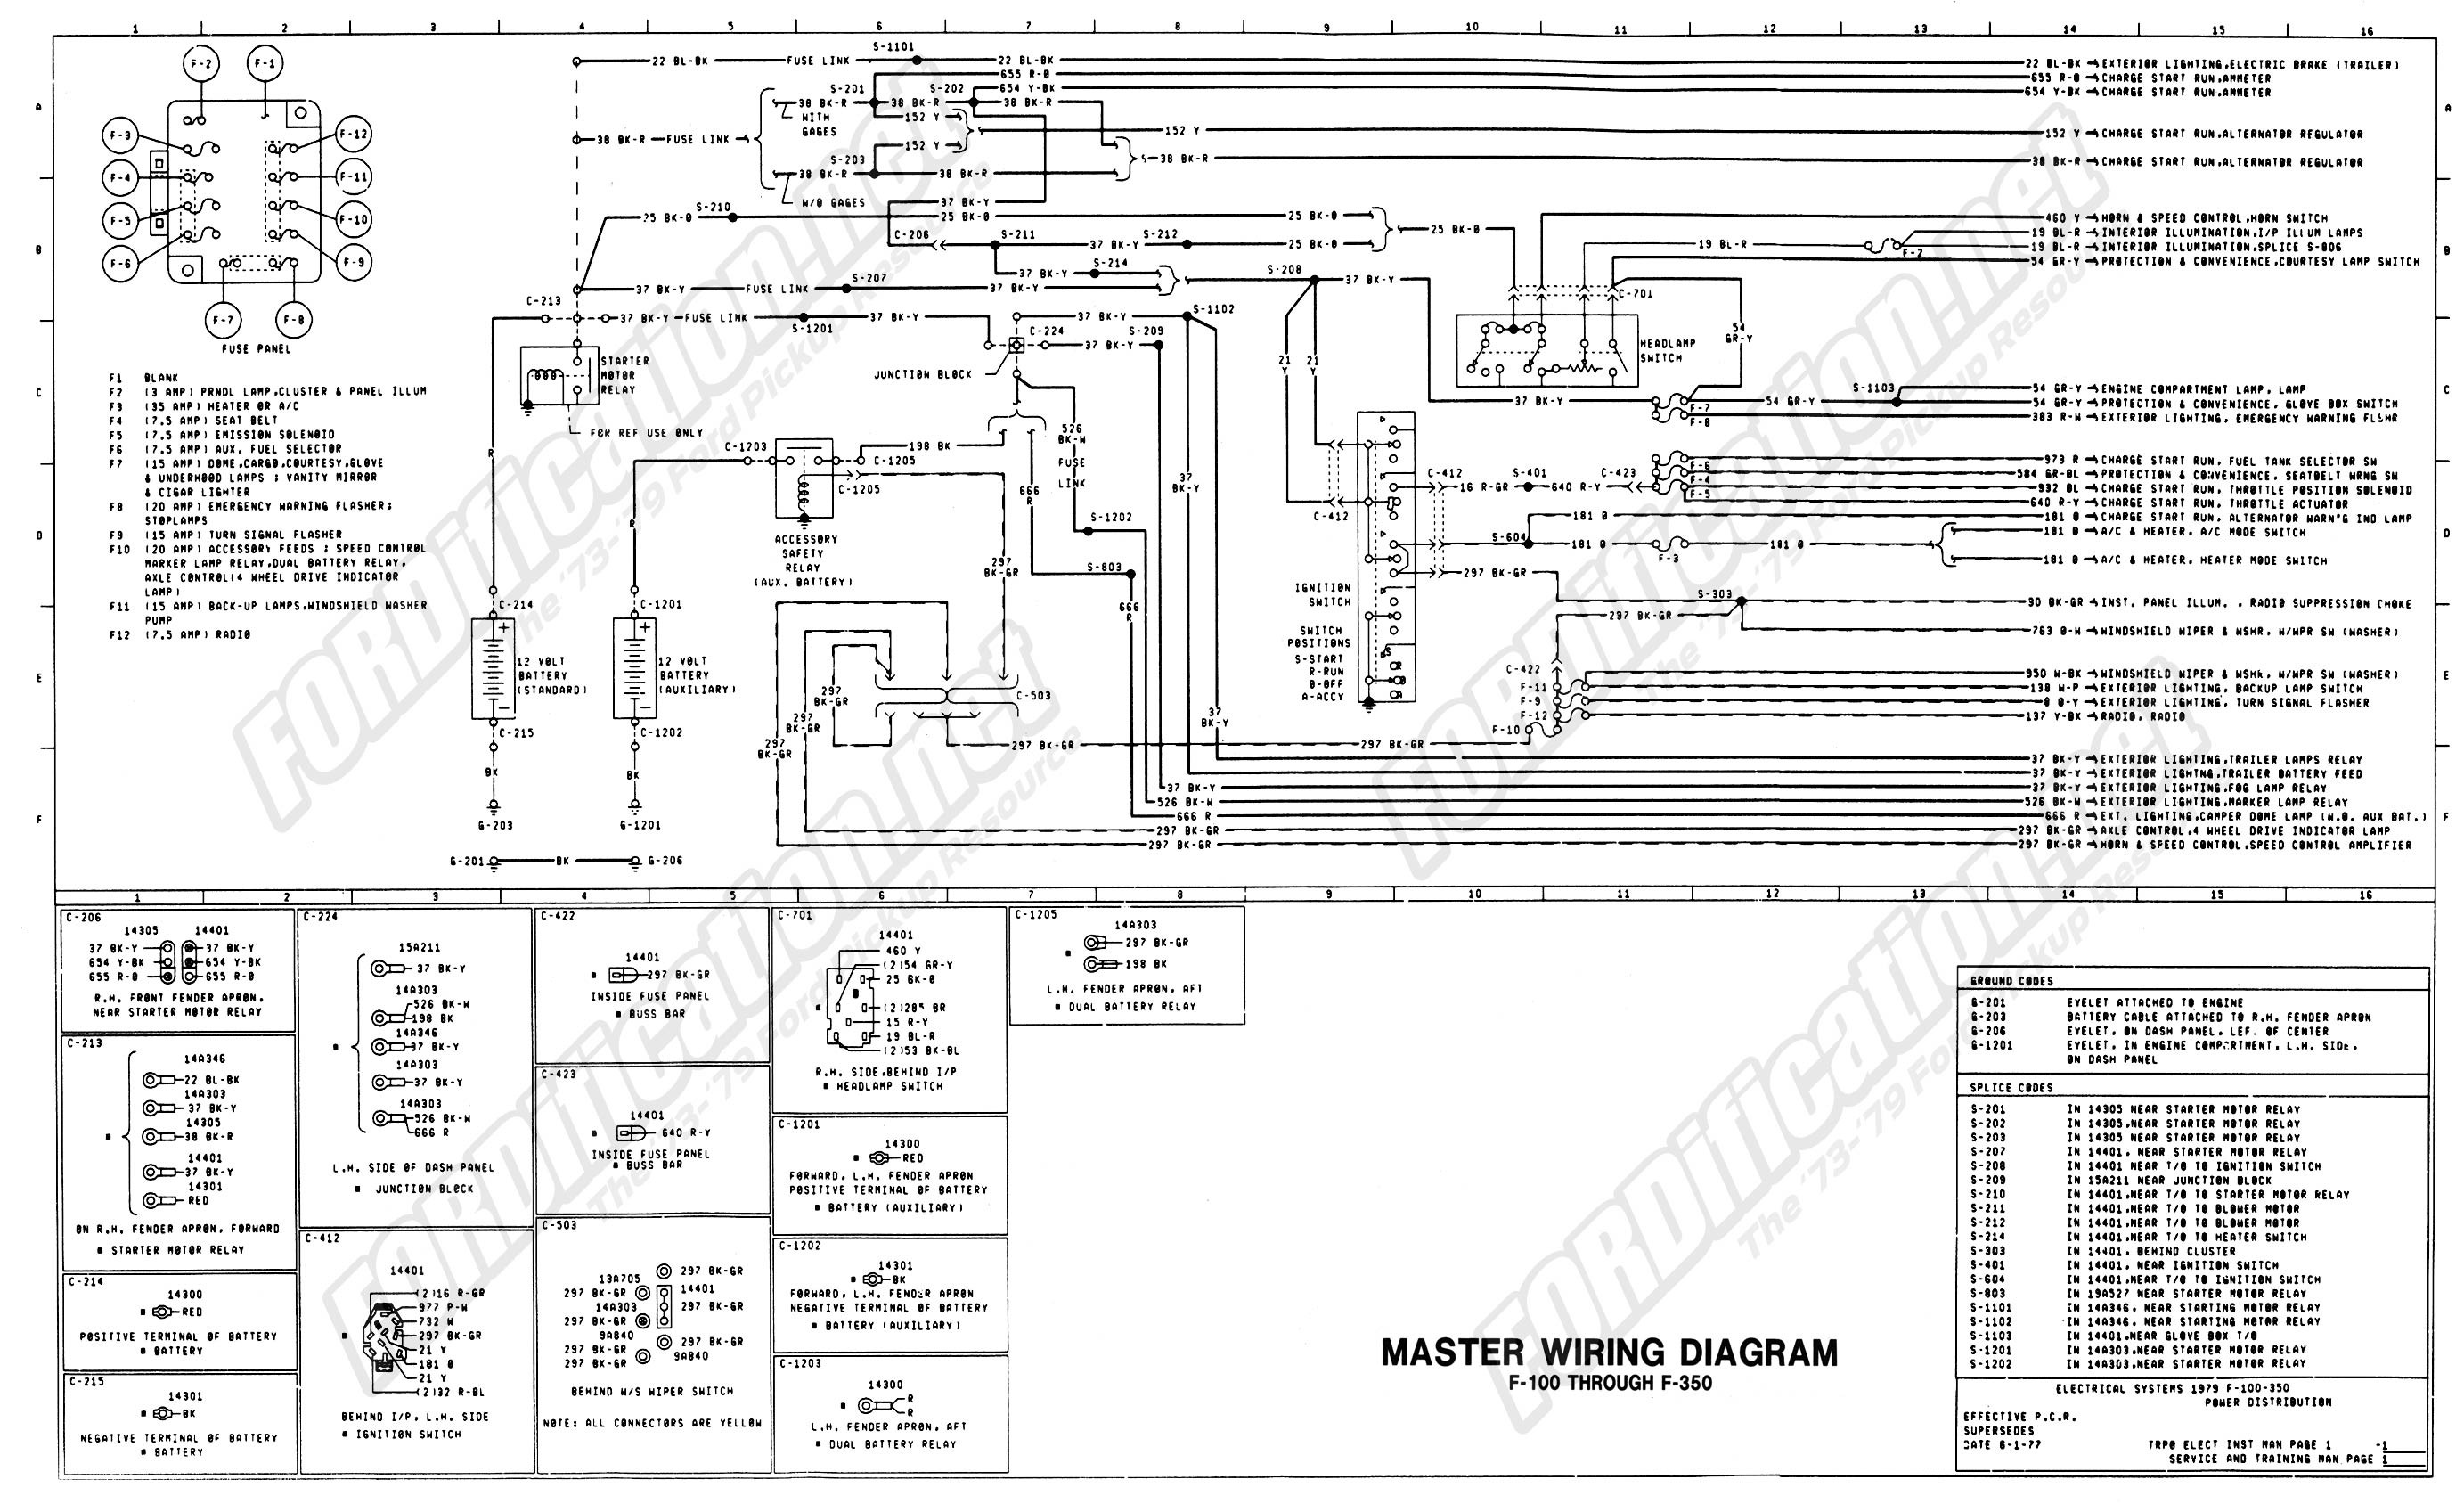 1986 Ford F150 Engine Diagram 86 Ranger Wiring As Well 1988 Fuel System 79 Solenoid Truck Enthusiasts Forums Of